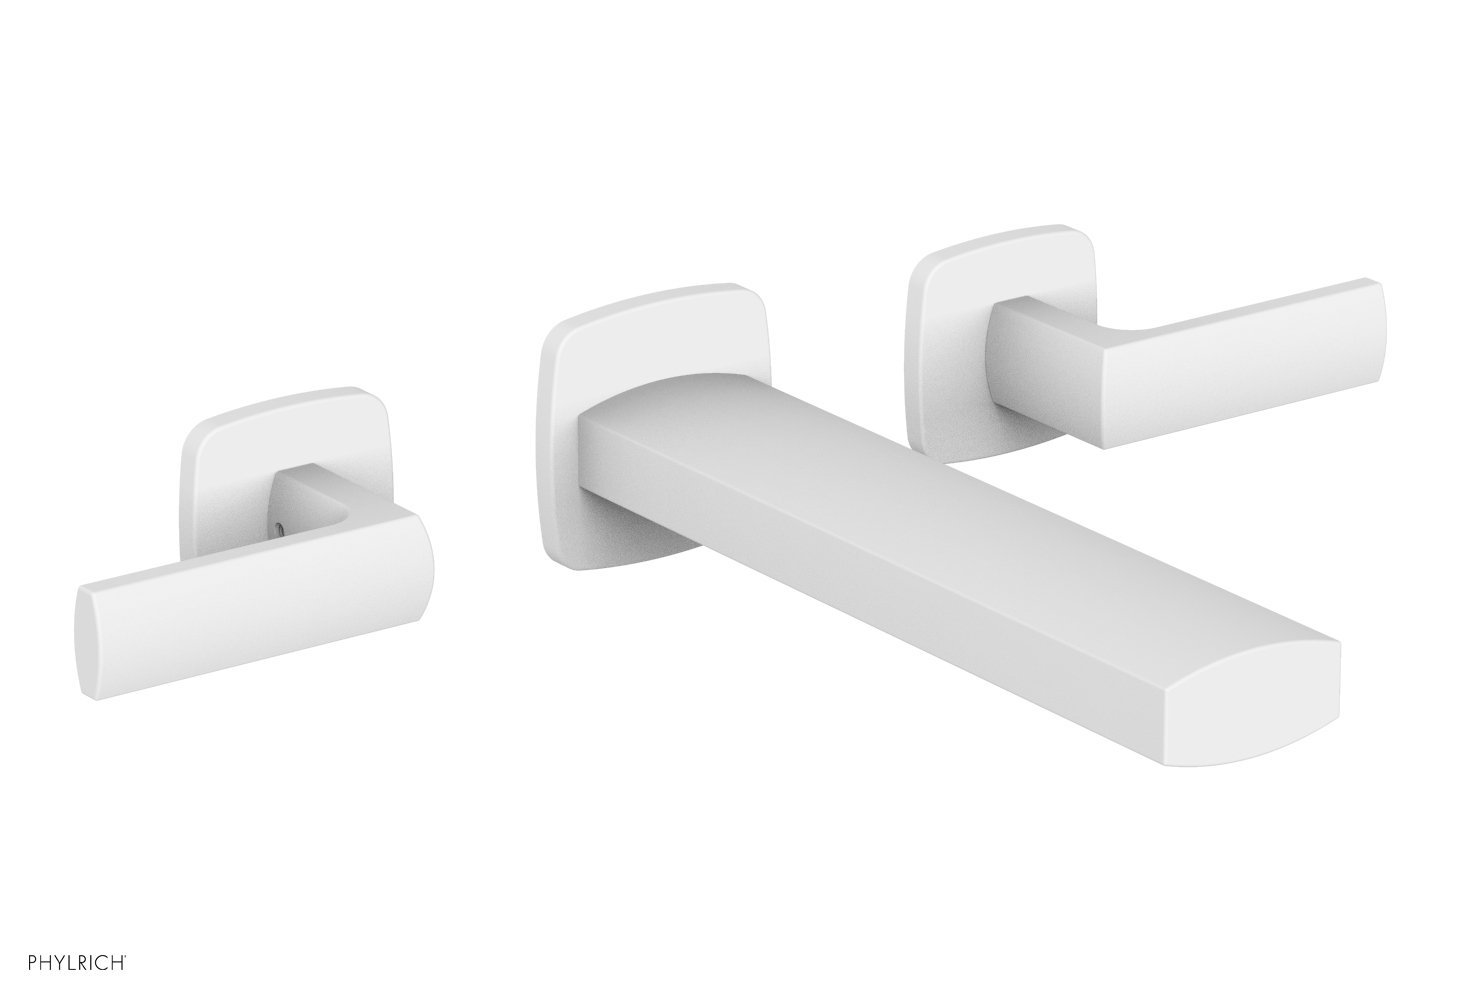 Phylrich 181-12-050 RADI Wall Lavatory Set - Lever Handles - Satin White